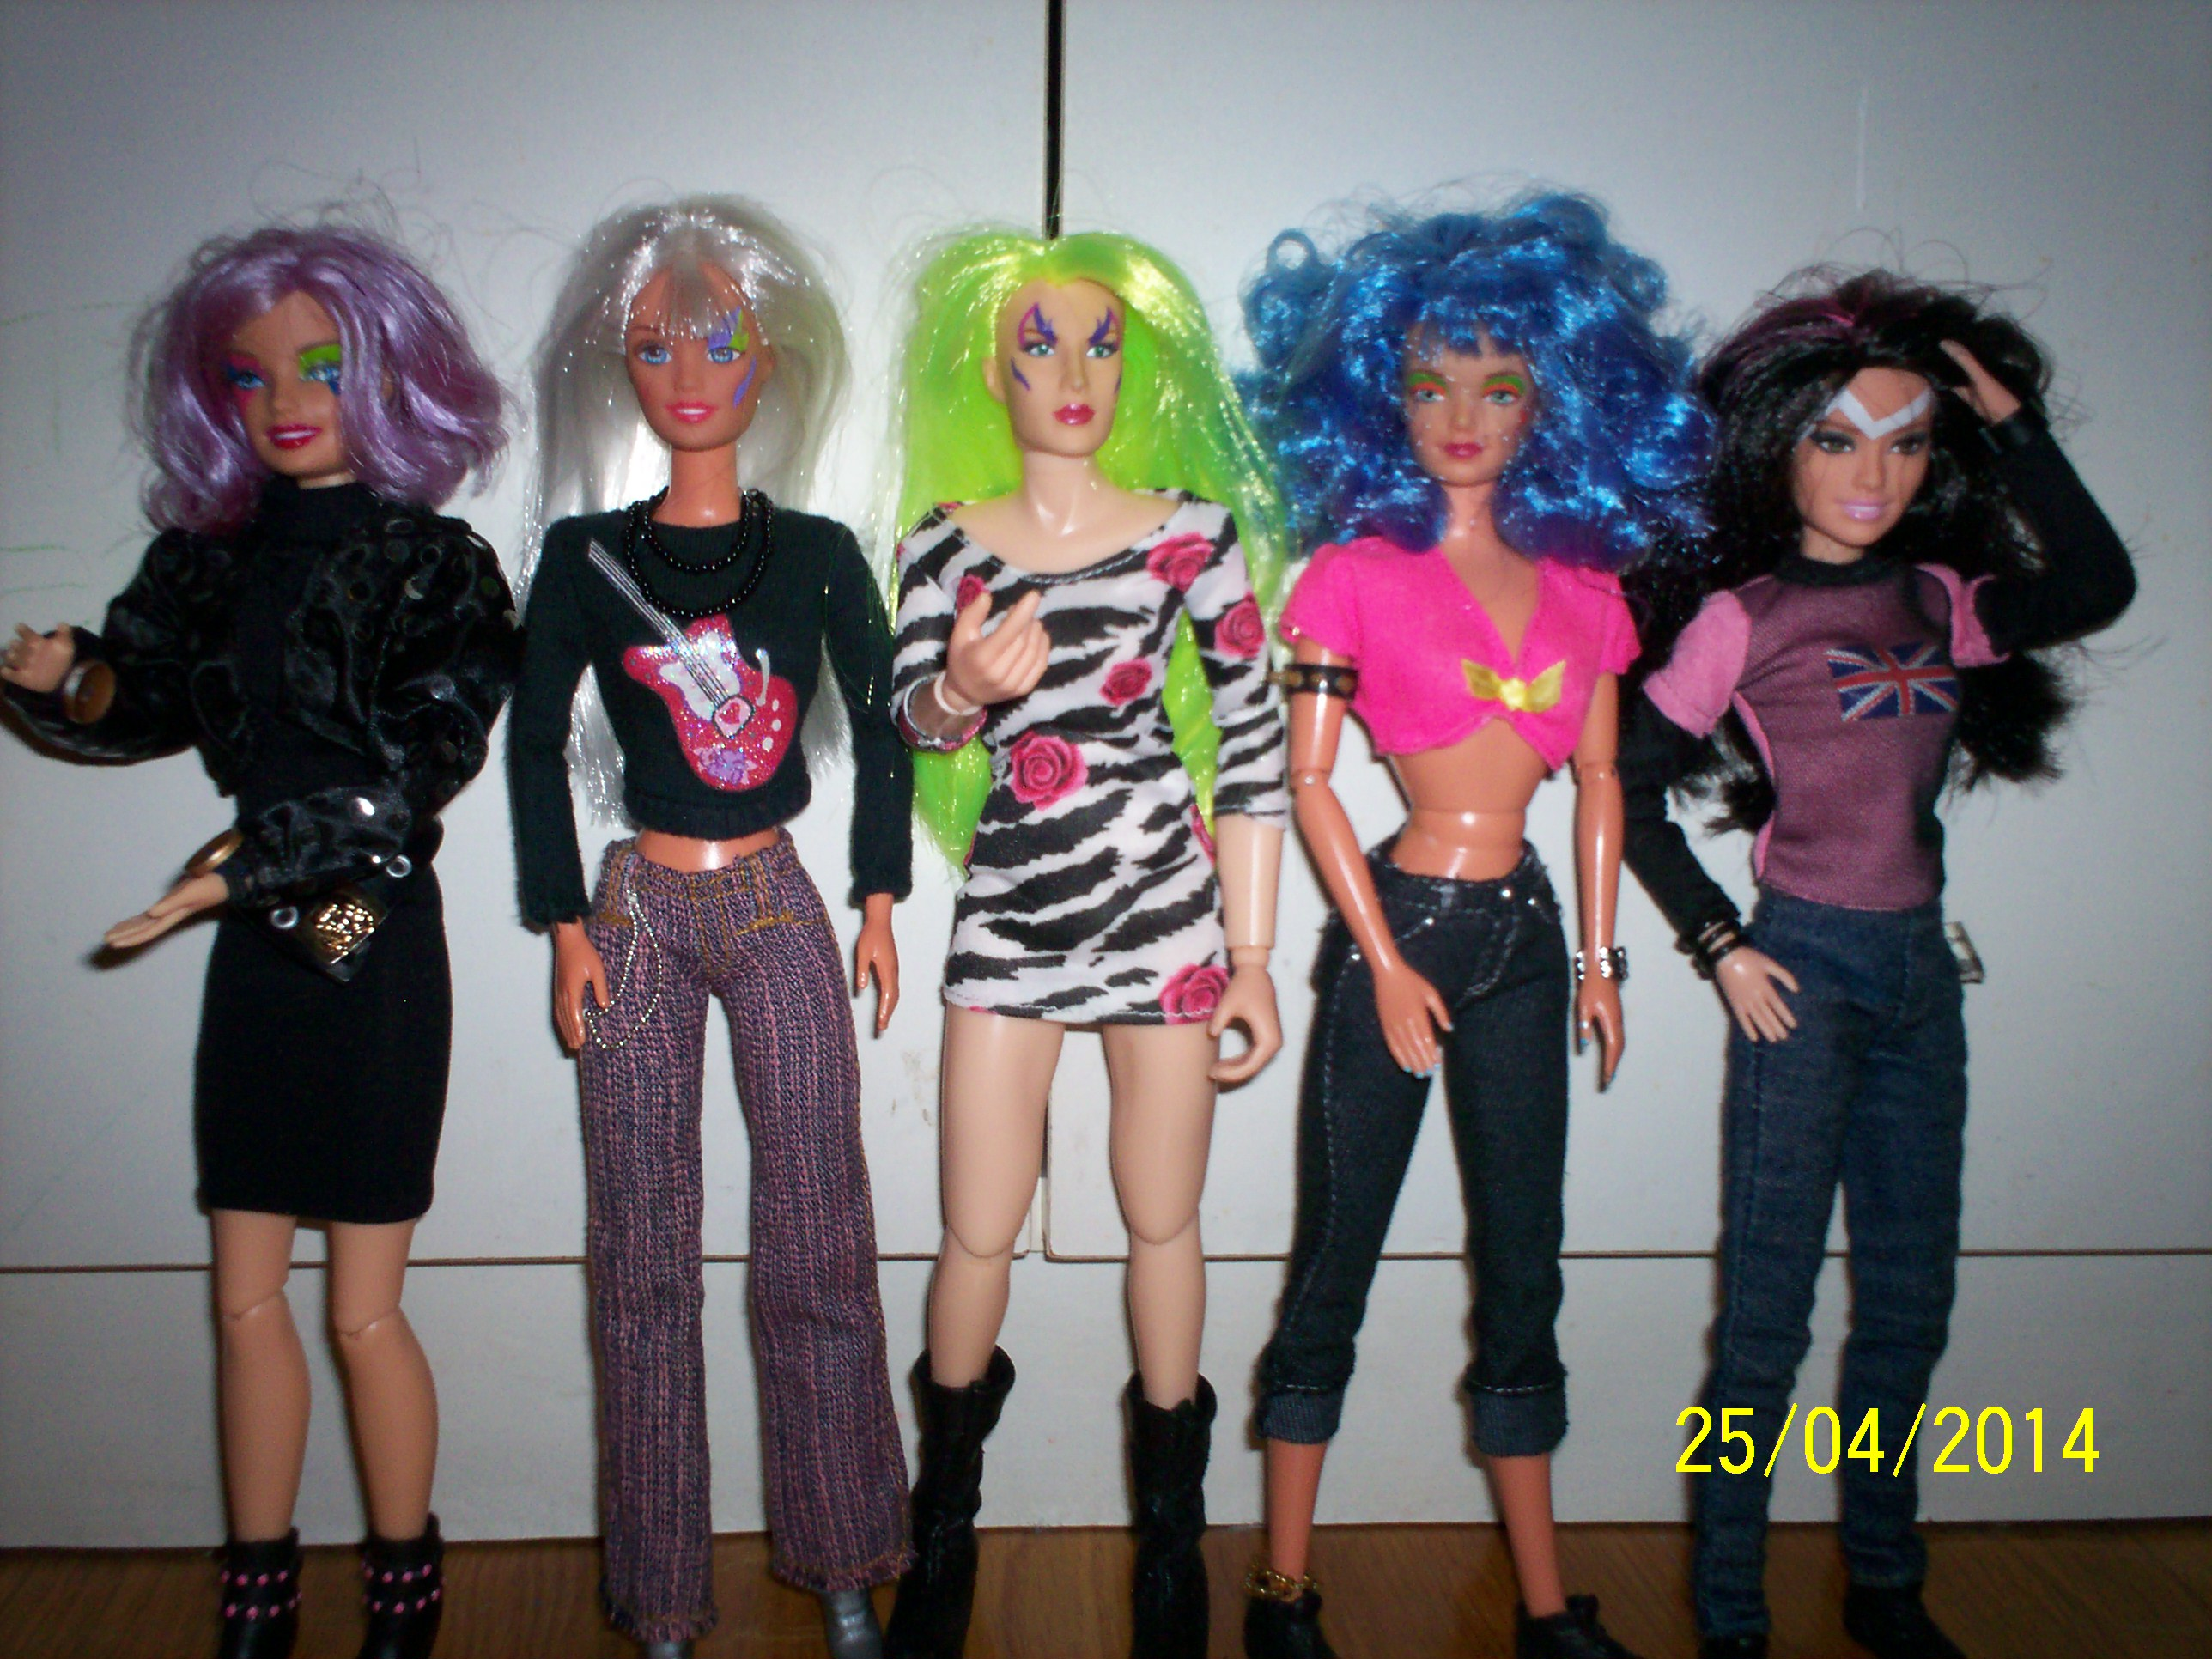 omar9 Glamour, Glitter, and Jemcon: The Truly Outrageous Fans of Jem and the Holograms Part 2